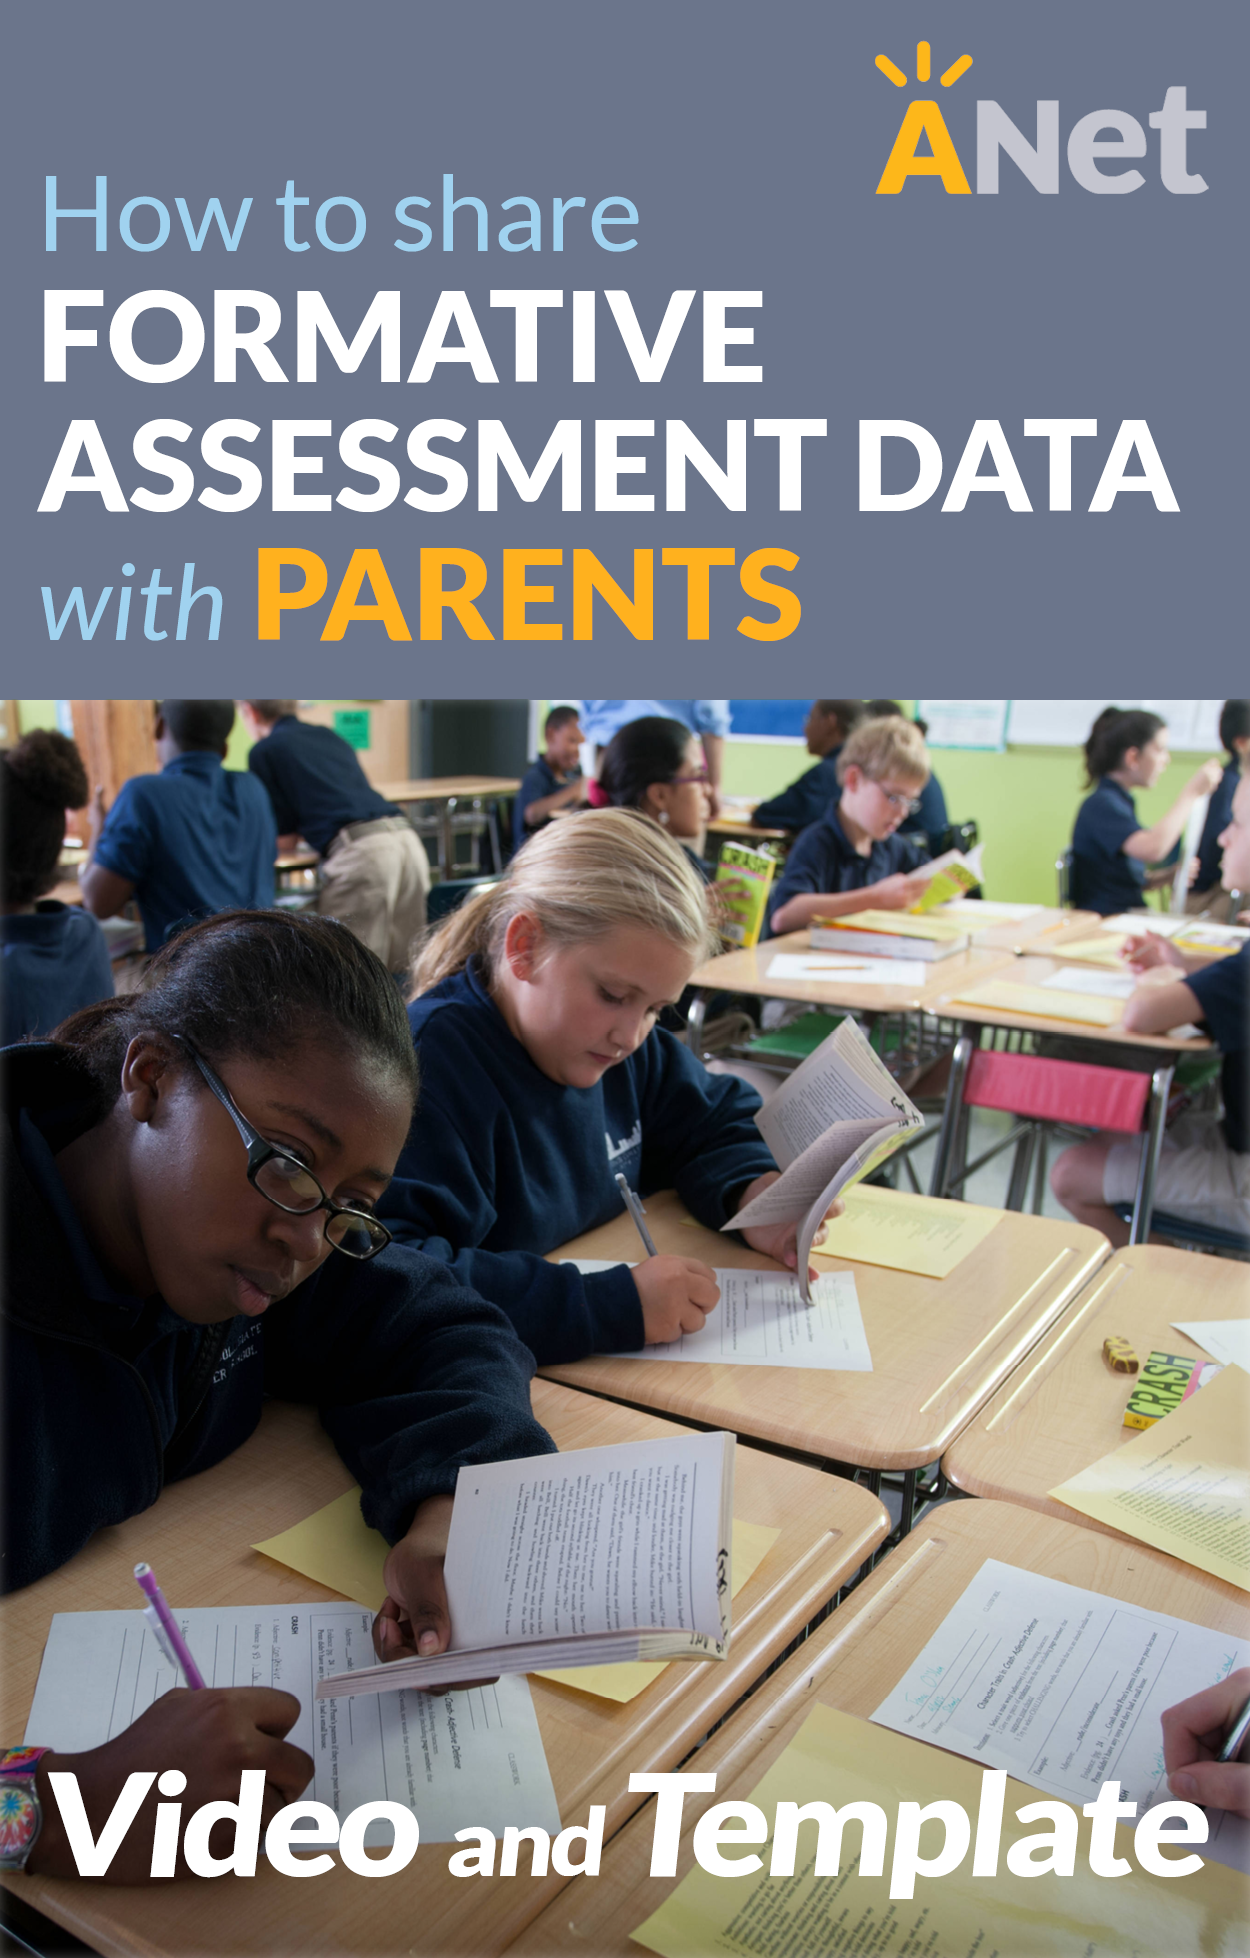 Sharing data with families